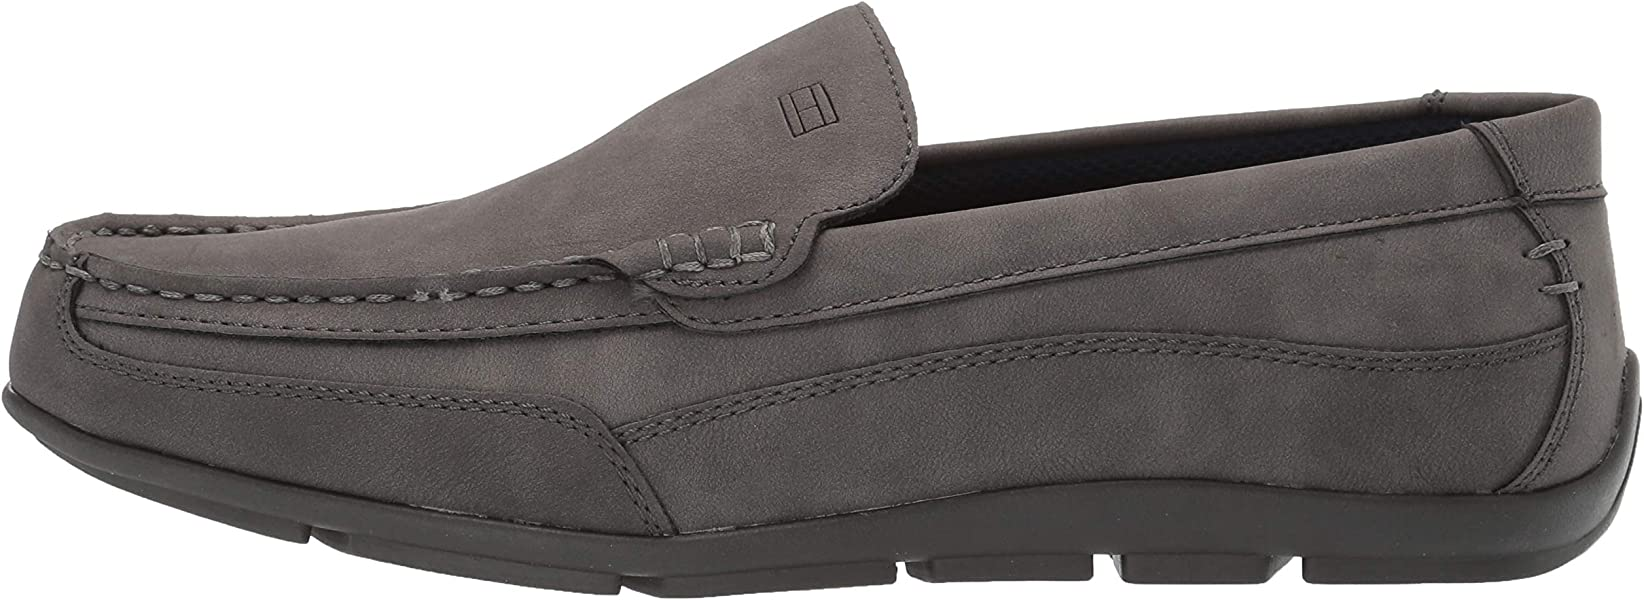 f042db6ba Men s Dathan Fashion Sneaker Brown. Tommy Hilfiger Men s Dathan Driving  Style Loafer ...